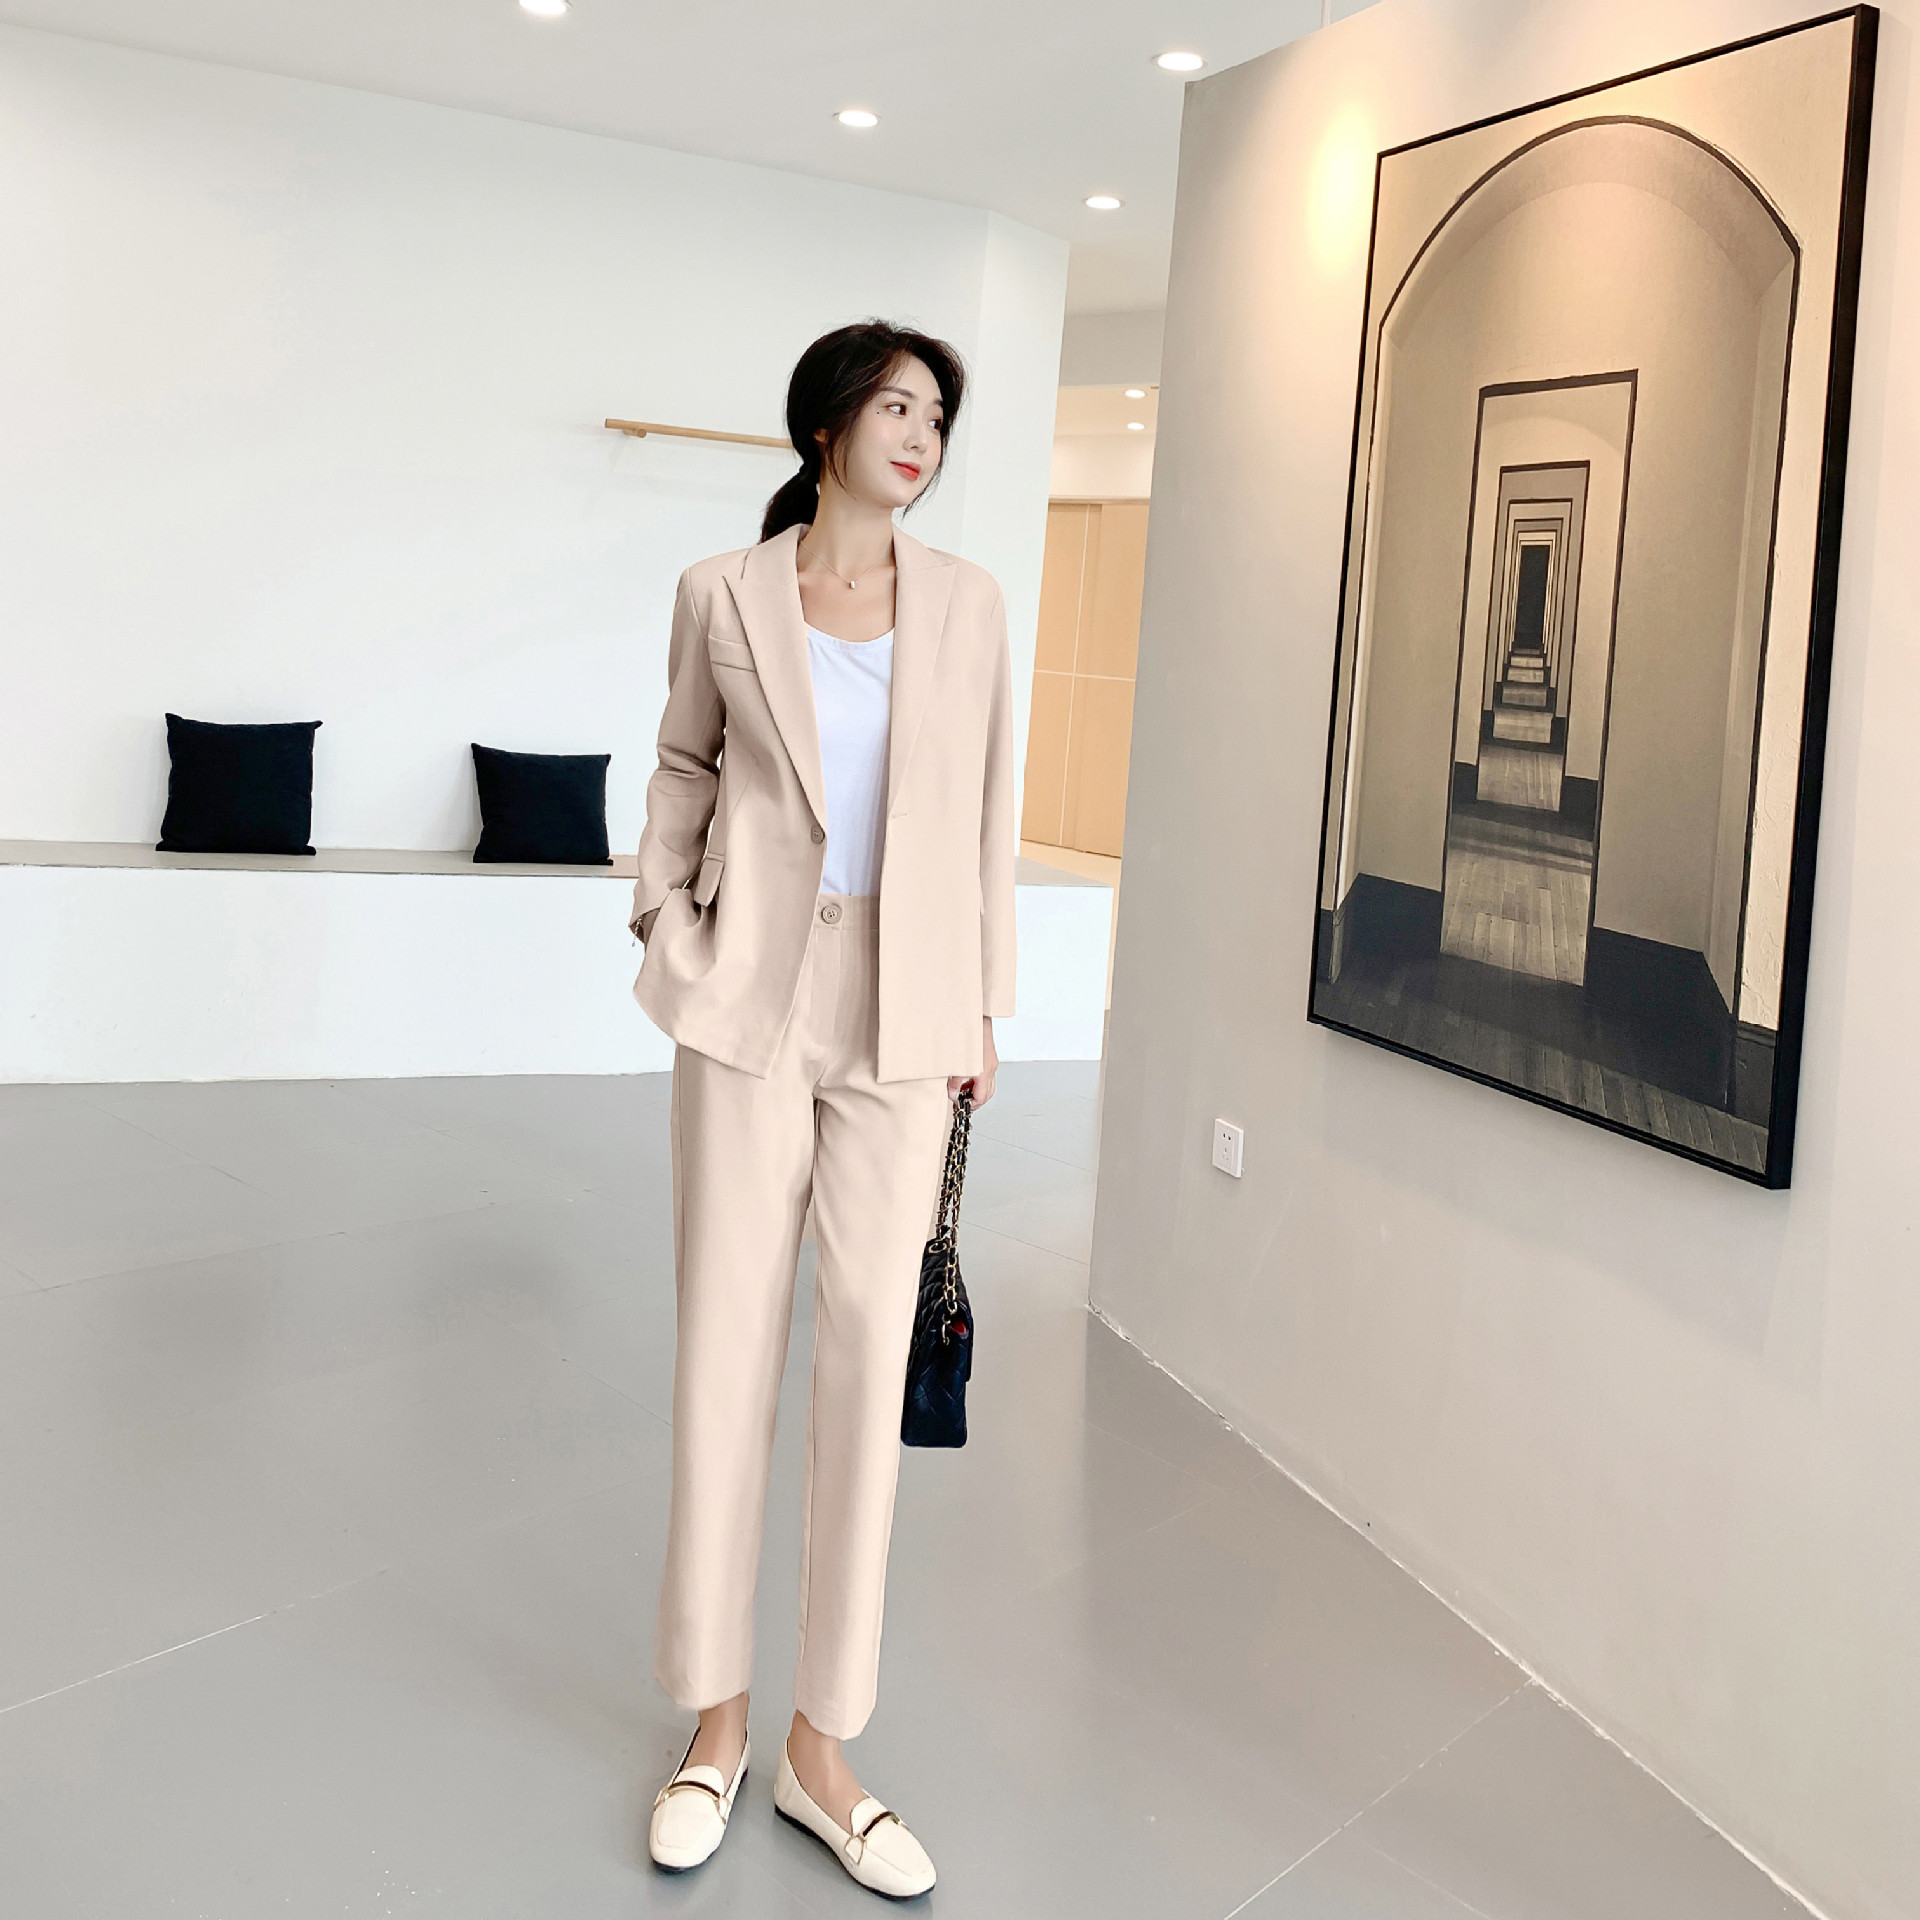 Women's Suit 2019 Autumn New Casual Fashion Temperament Slim Slimming Solid Color Single Buckle Small Suit Trousers Two-piece